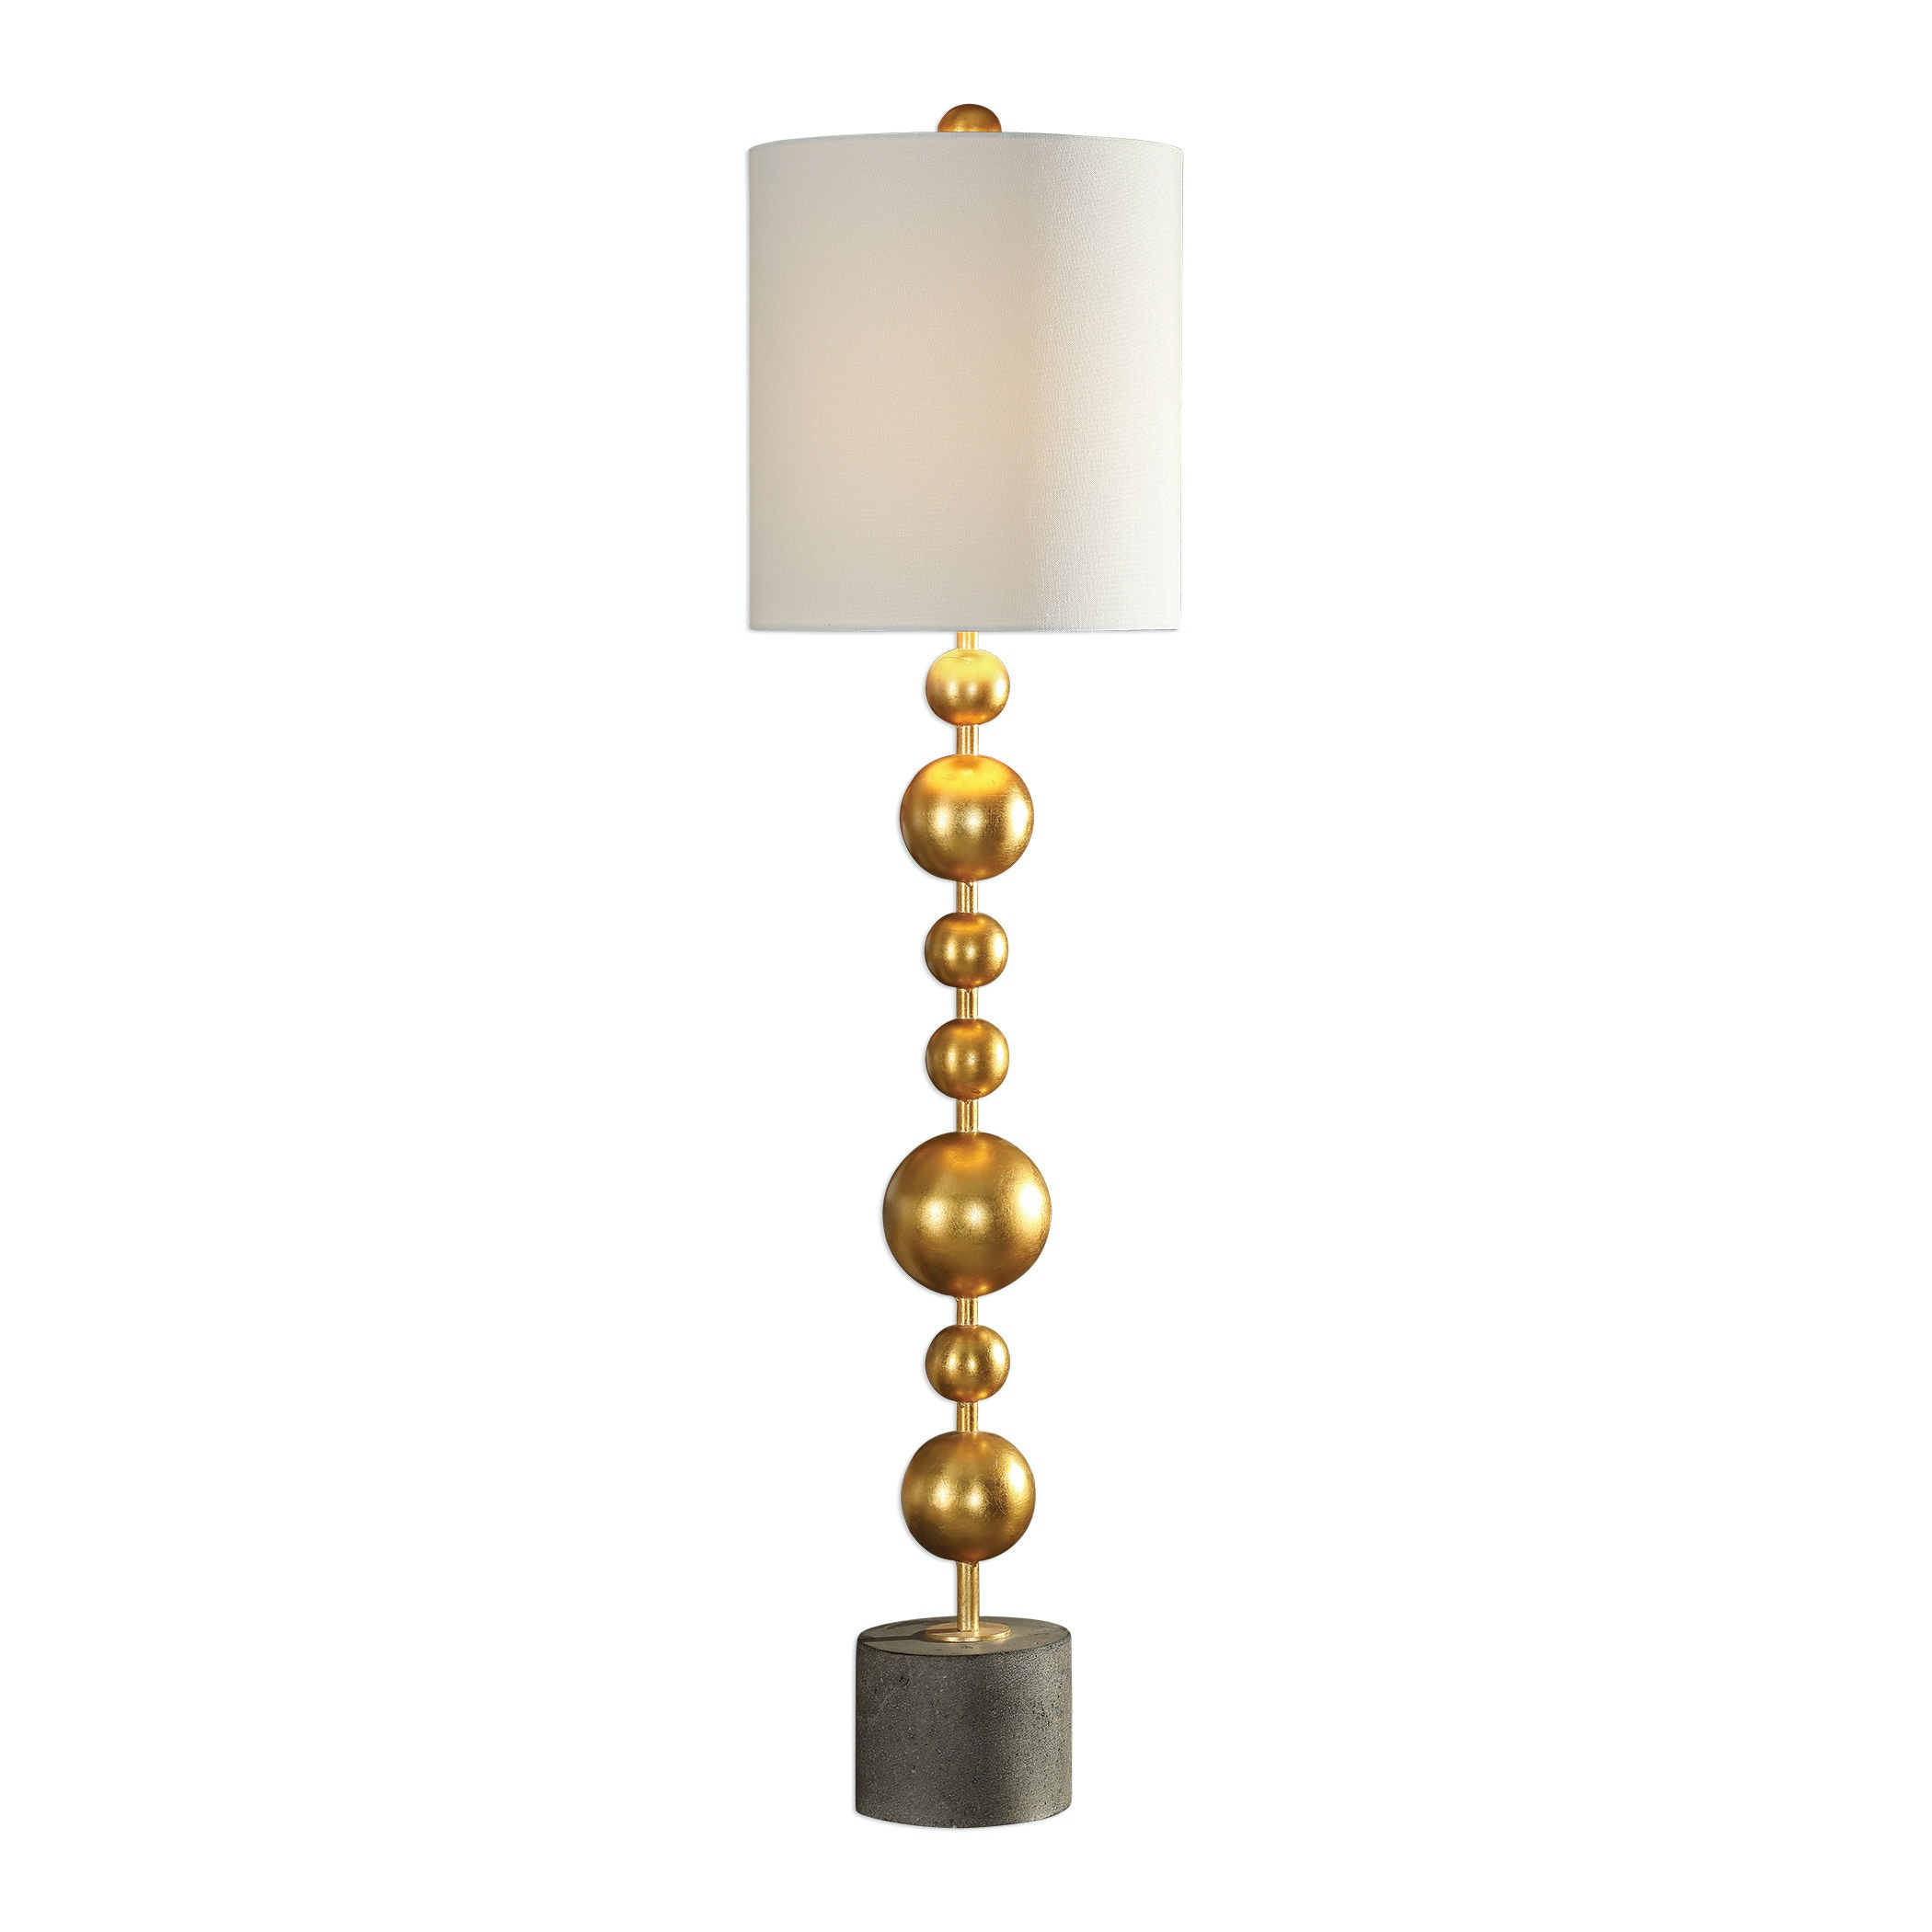 uttermost buffet lamps side uttermost selim gold buffet lamp 295661 lamps and lighting carol